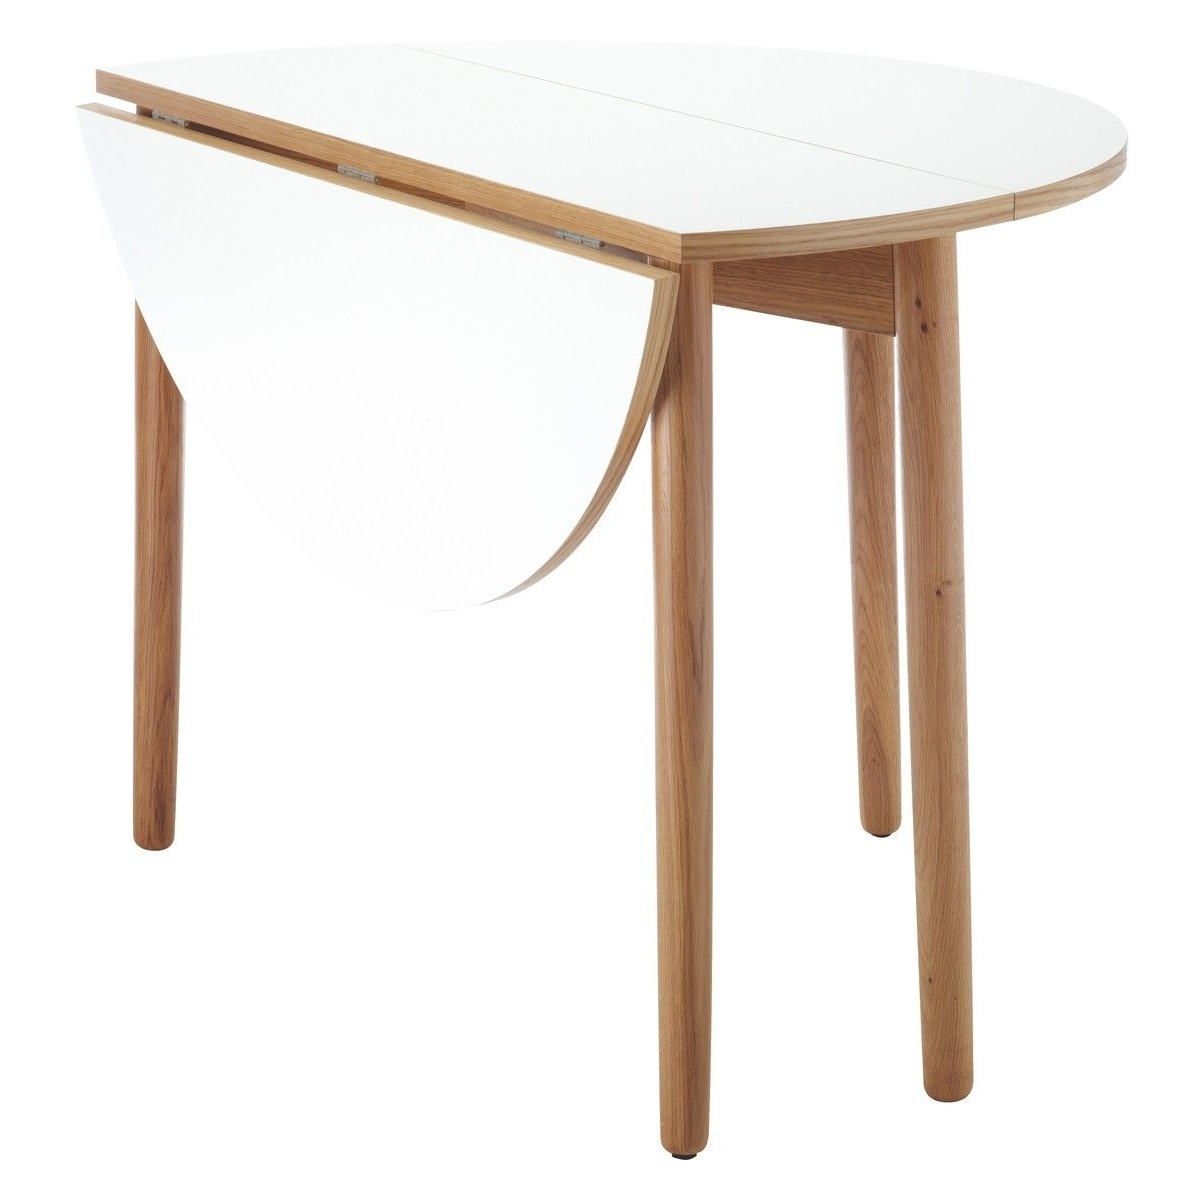 2017 Folding Dining Tables Inside Best Suki 2 4 Seat White Folding Round Dining Table Buy Now At (Gallery 23 of 25)